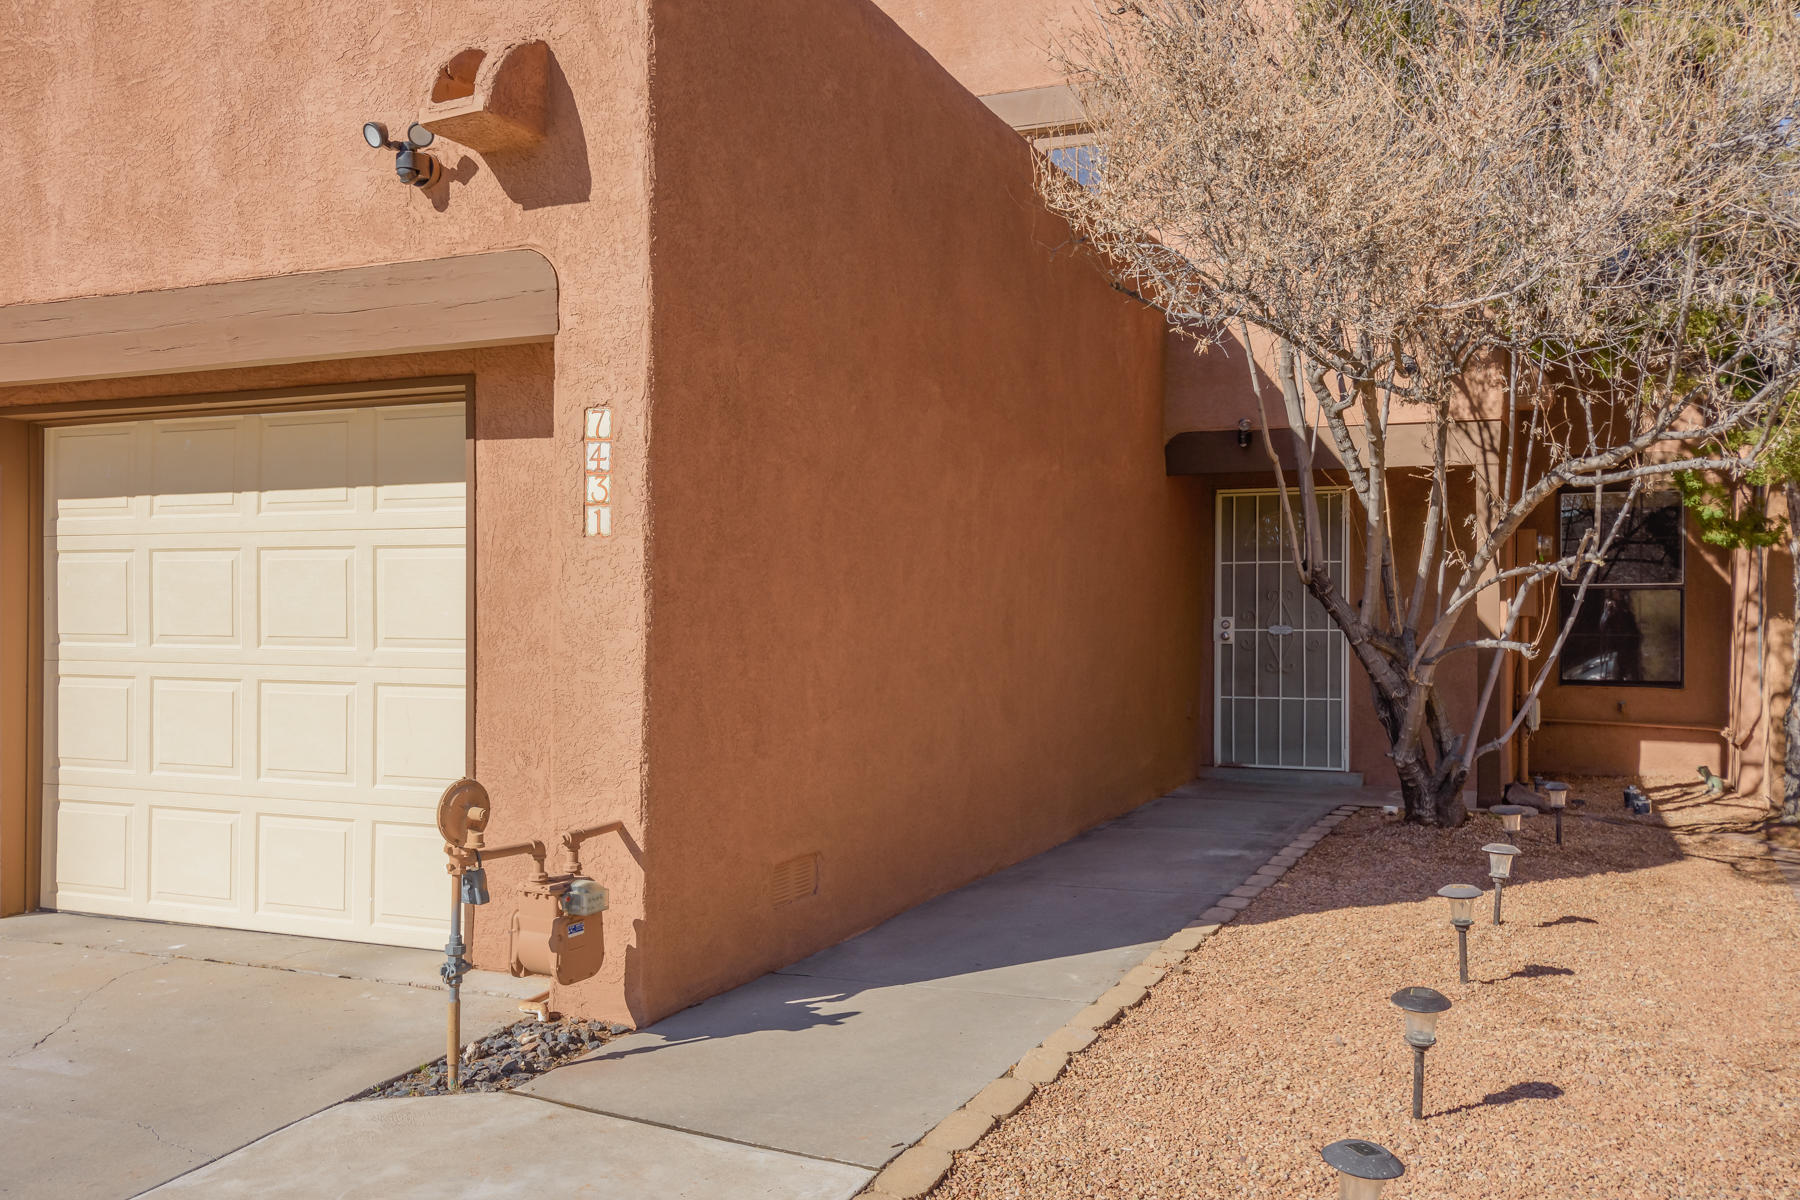 Lovely spacious Townhome in a great neighborhood centrally located in NE Albuquerque and pay NO HOA fee!  The living room has impressively high cathedral ceilings with a beautiful fireplace to match.  First level conveniently includes a bedroom, laundry, and bathroom.  This home also includes refrigerated air, TPO roof, and updated laminate flooring.  As a bonus the home includes all appliances including washer/dryer set.  MBR has access to a Balcony, full on-suite bathroom and walk-in closet.  Enjoy the year round water feature and low maintenance backyard.  You have to come see this home today because it won't last long. Shows Great!